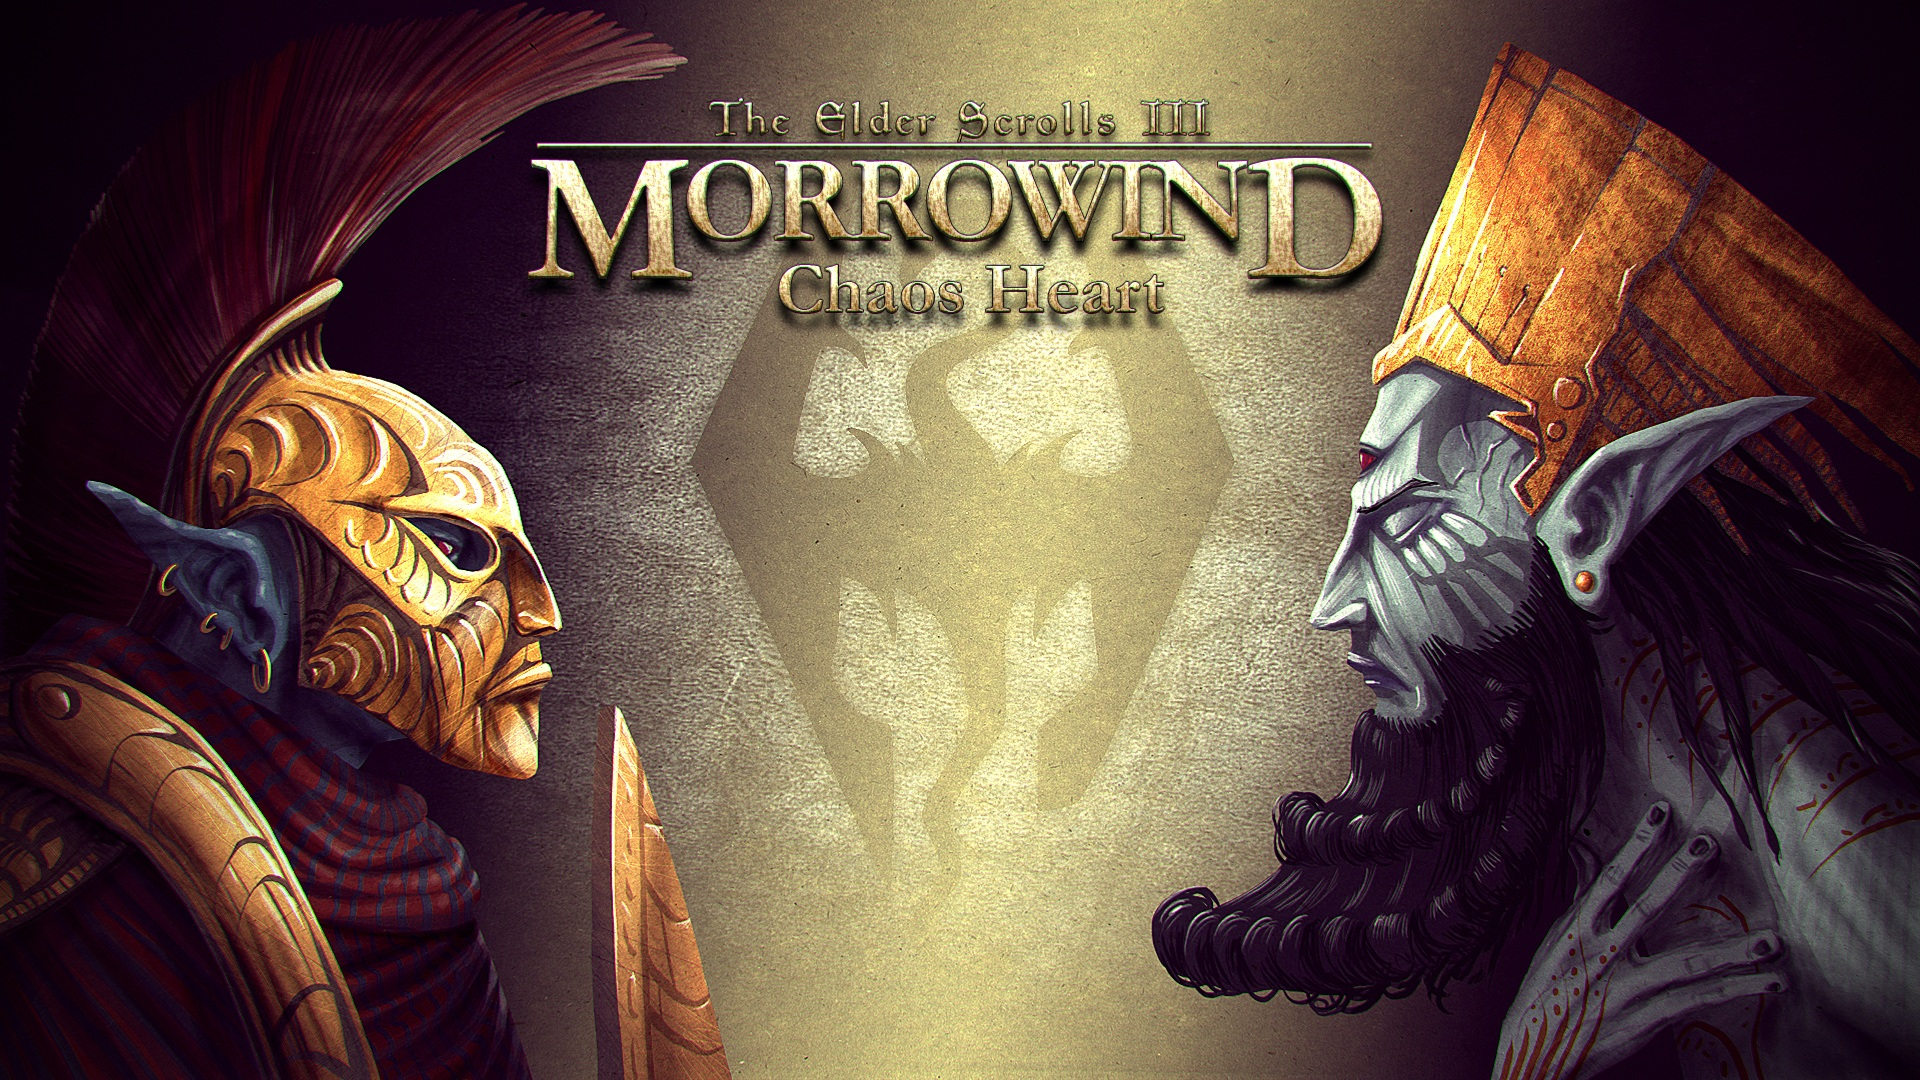 78+] Morrowind Wallpaper on WallpaperSafari